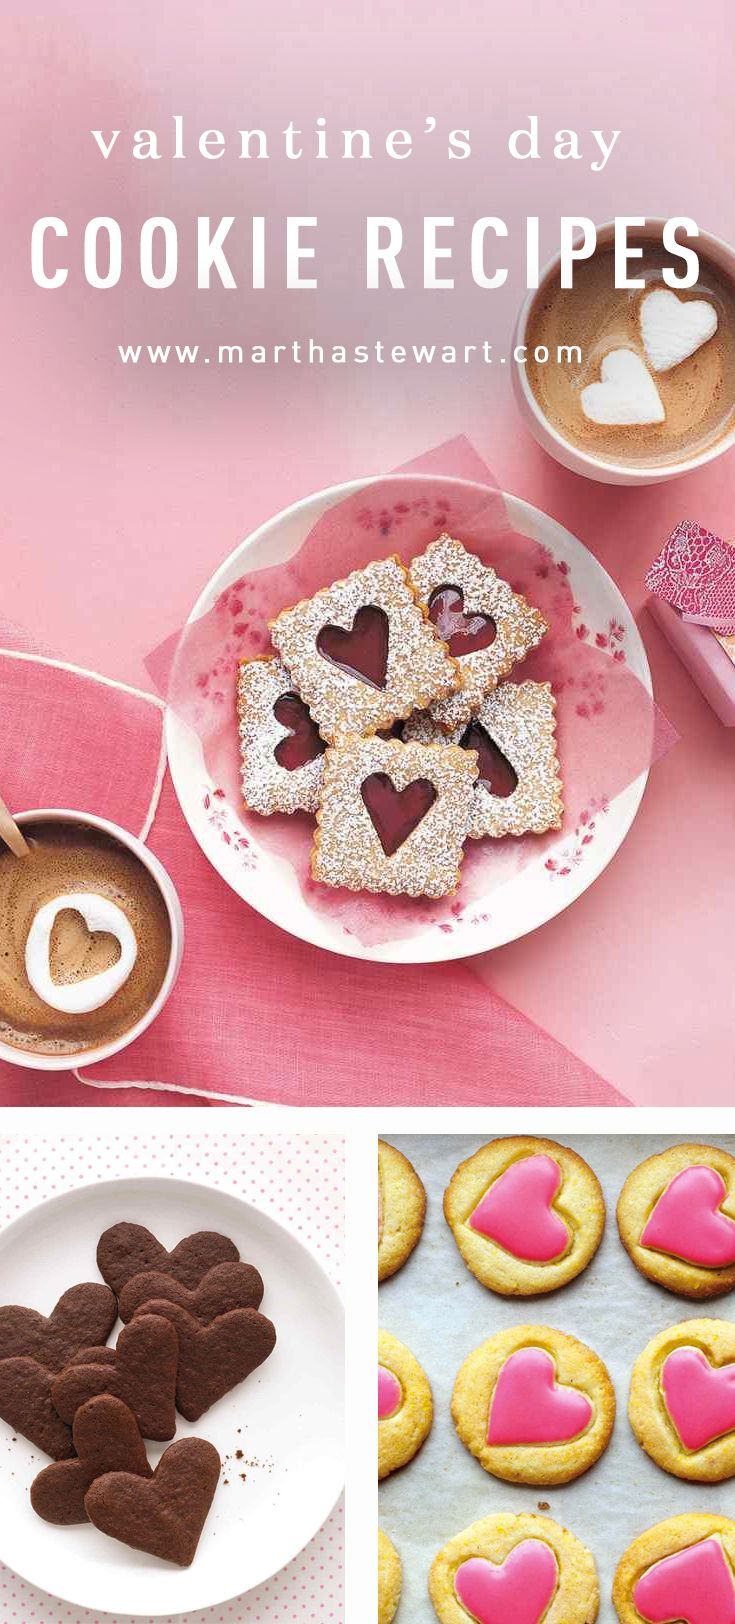 "Valentine's Day Cookie Recipes | Martha Stewart Living - Surprise your valentine with one of these homemade treats as a sweet way to say ""I love you."" Choose from heart-shaped brownies, conversation cookies, and more."